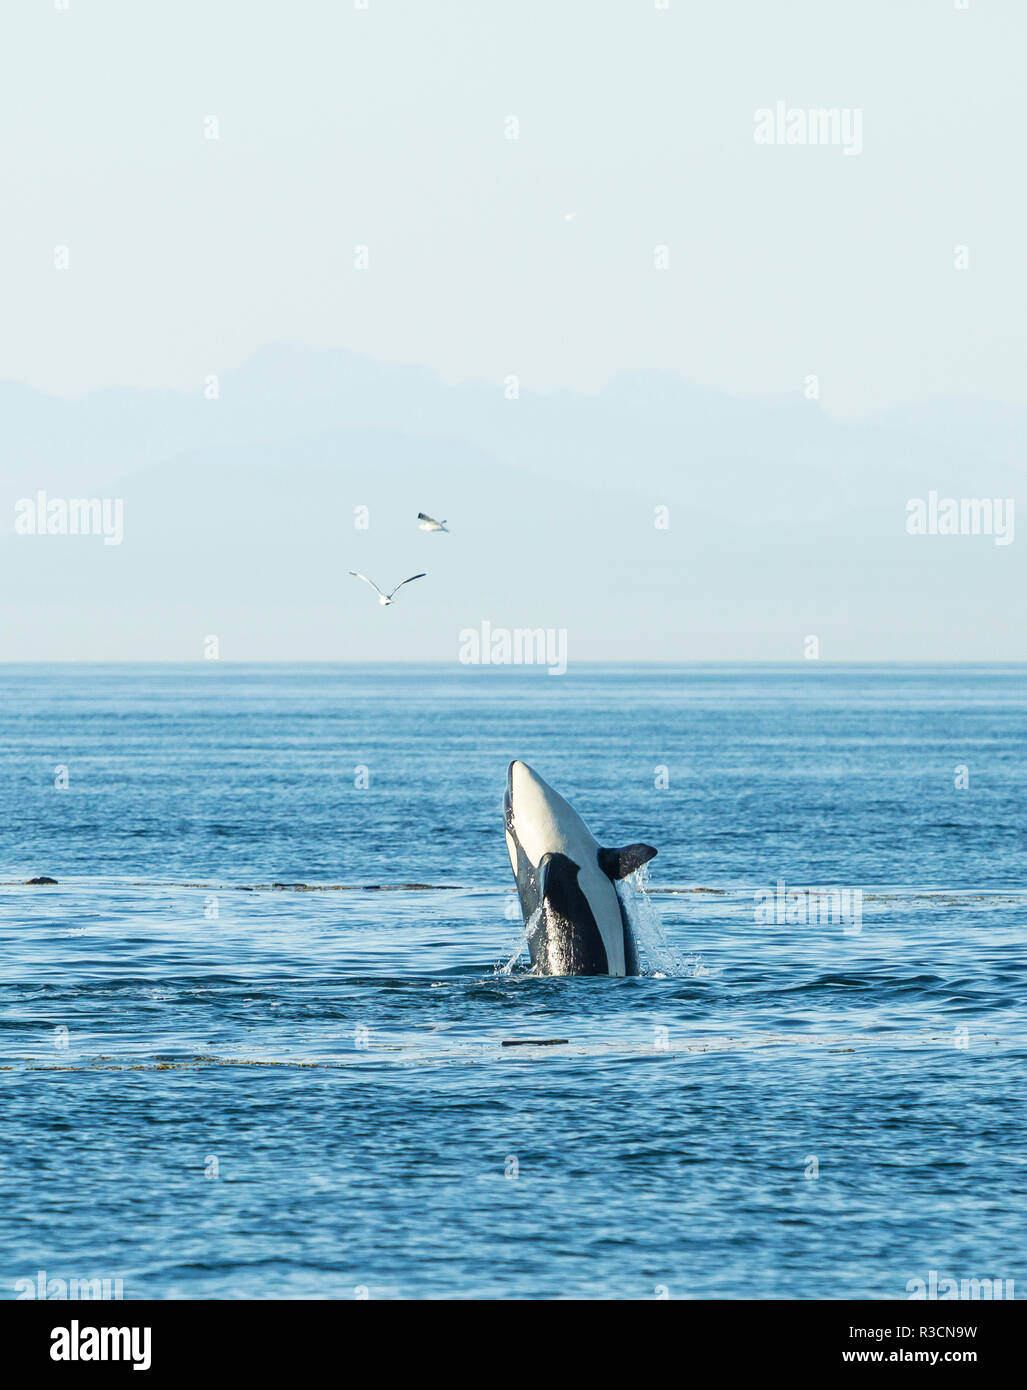 Breaching Orca (Orcinus orca) at Boundary Pass, border between British Columbia Gulf Islands Canada and San Juan Islands, WA - Stock Image